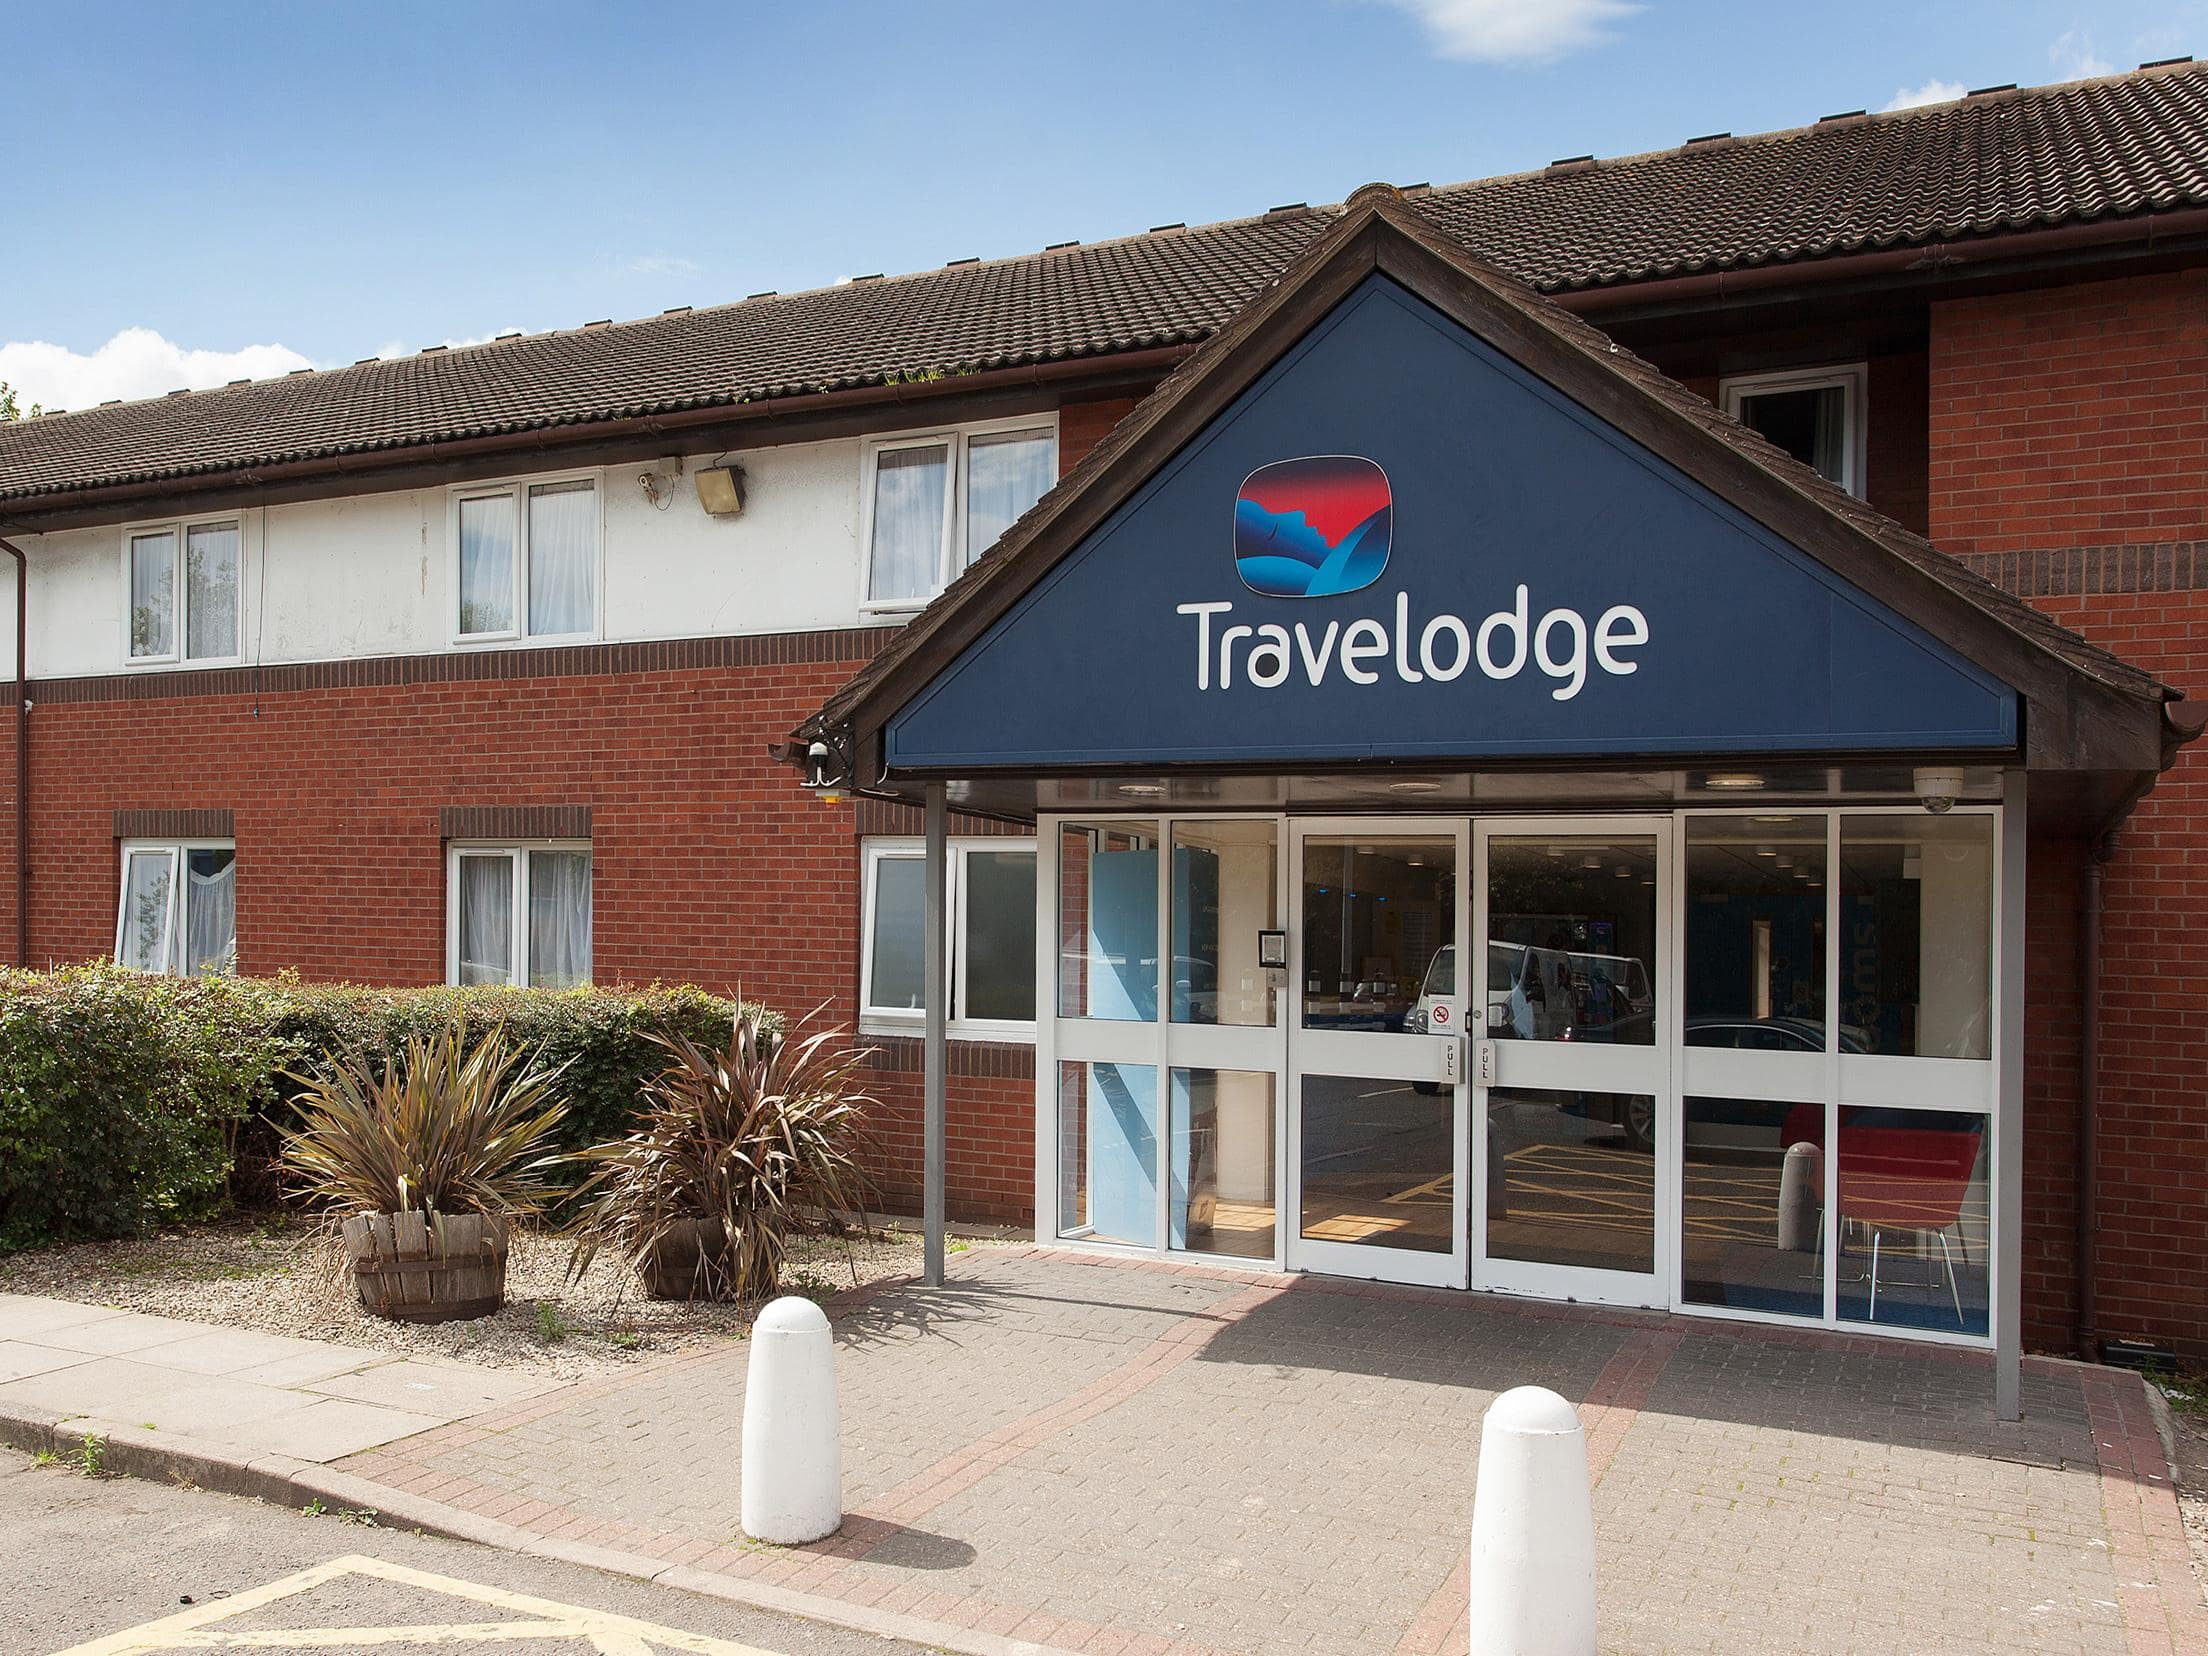 Travelodge Hotel London Feltham Feltham